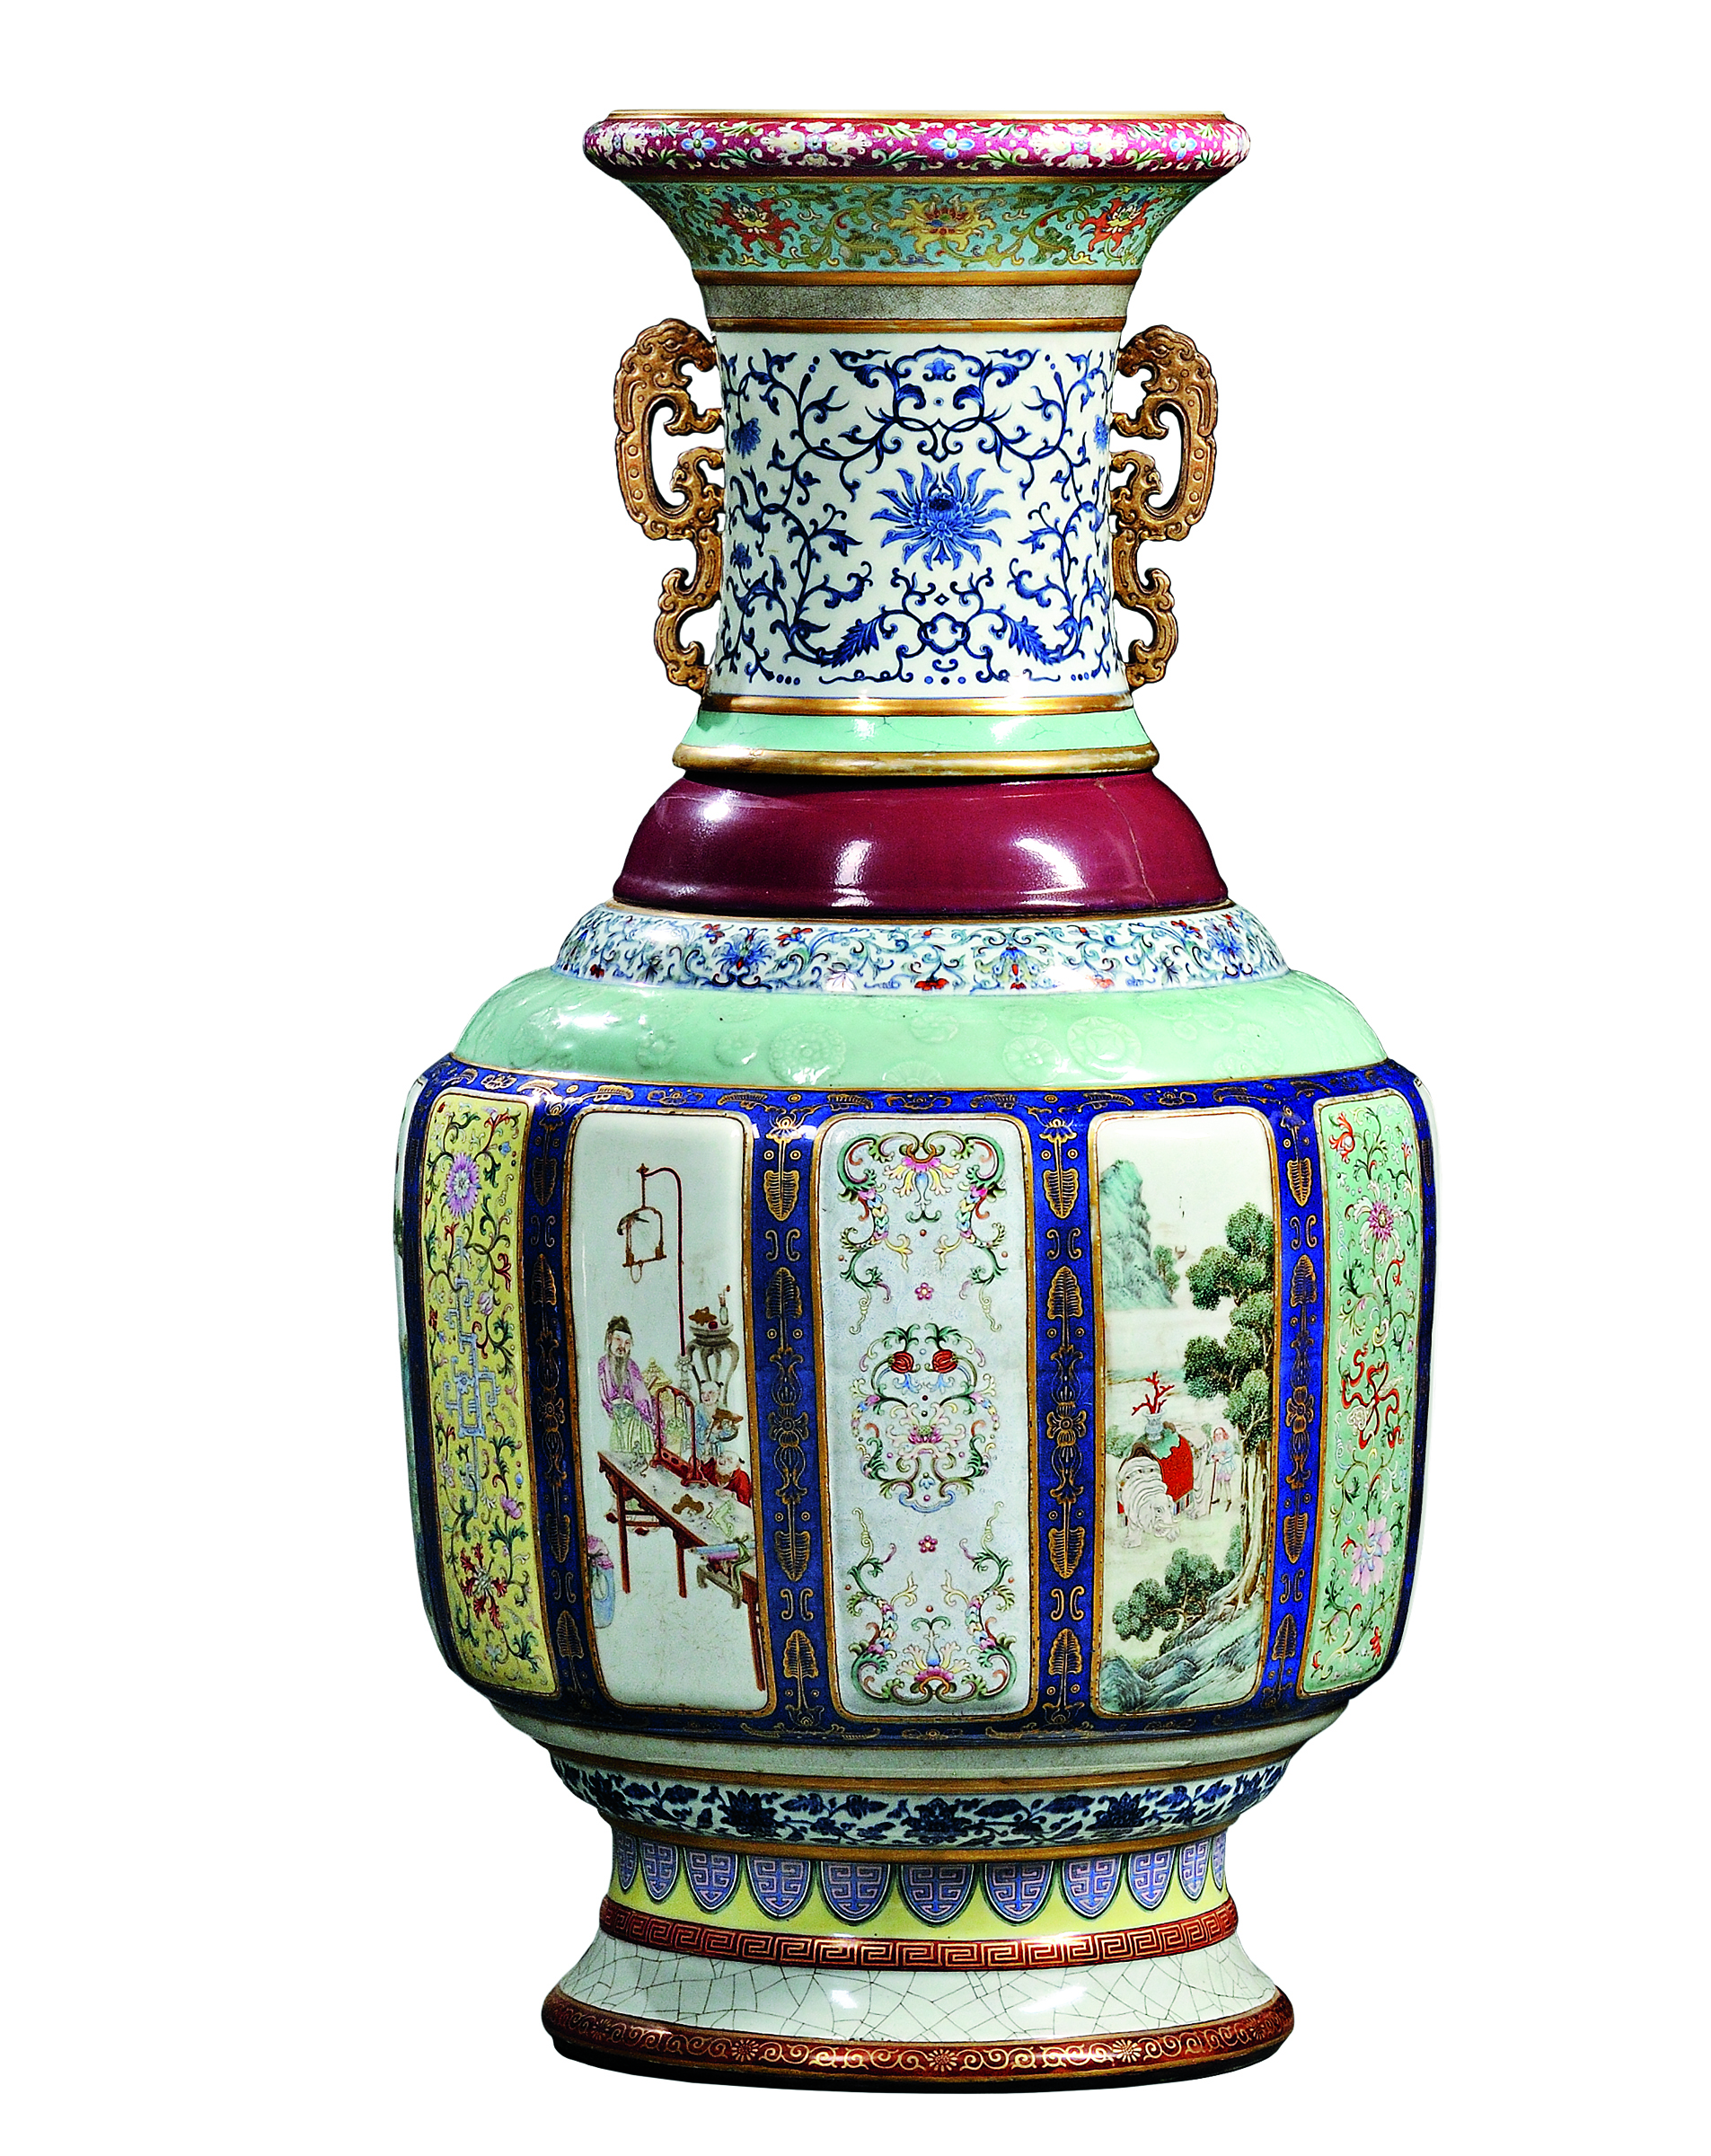 Monumental Fencai Flower and Landscape Vase sold for $24,723,000